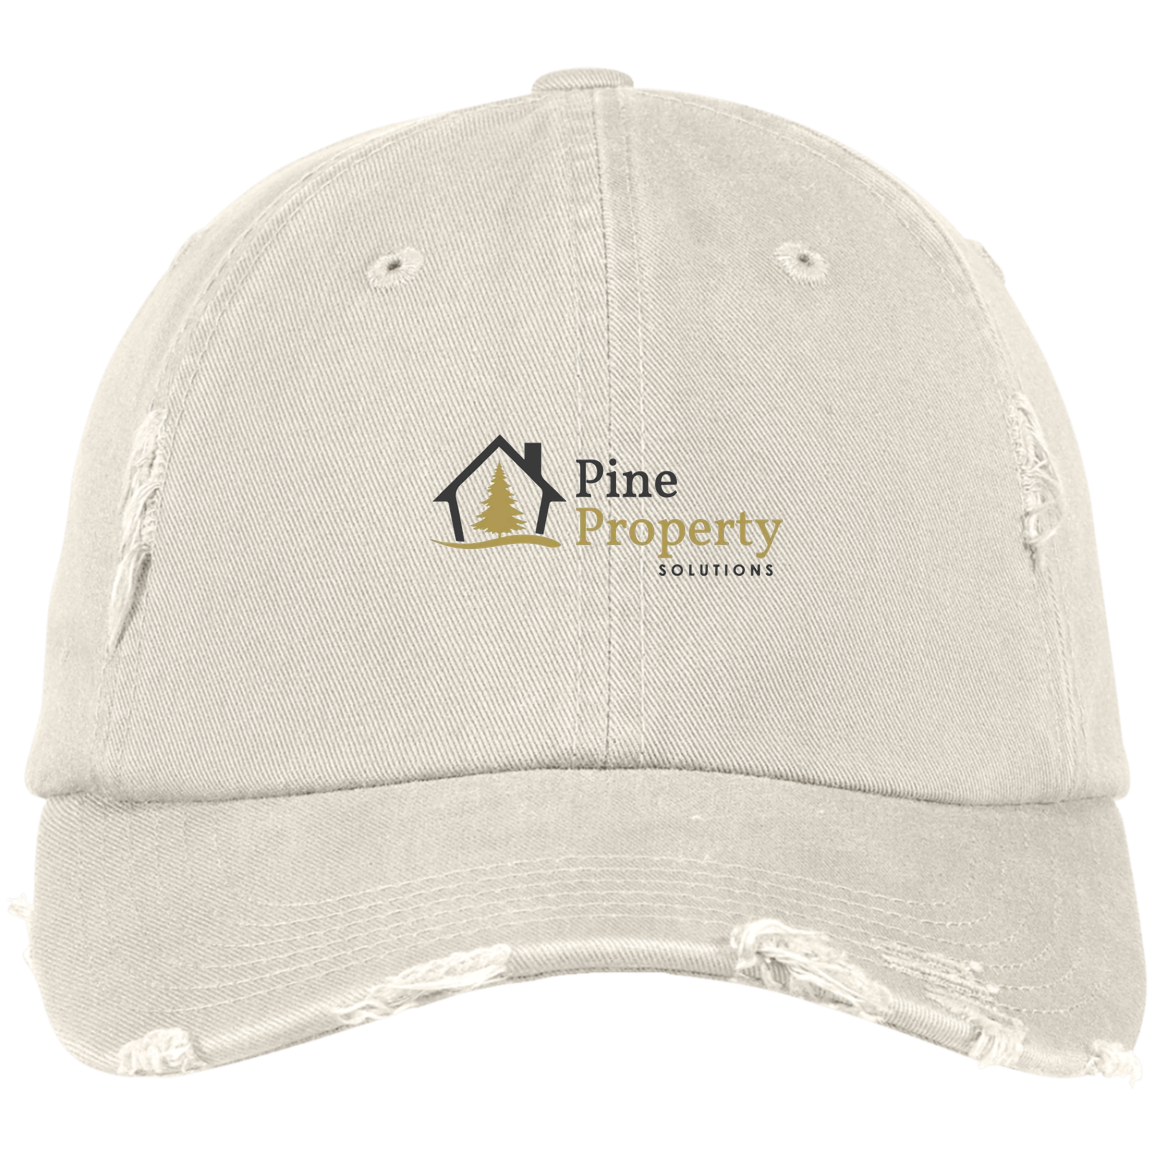 Pine Property Distressed Dad Cap